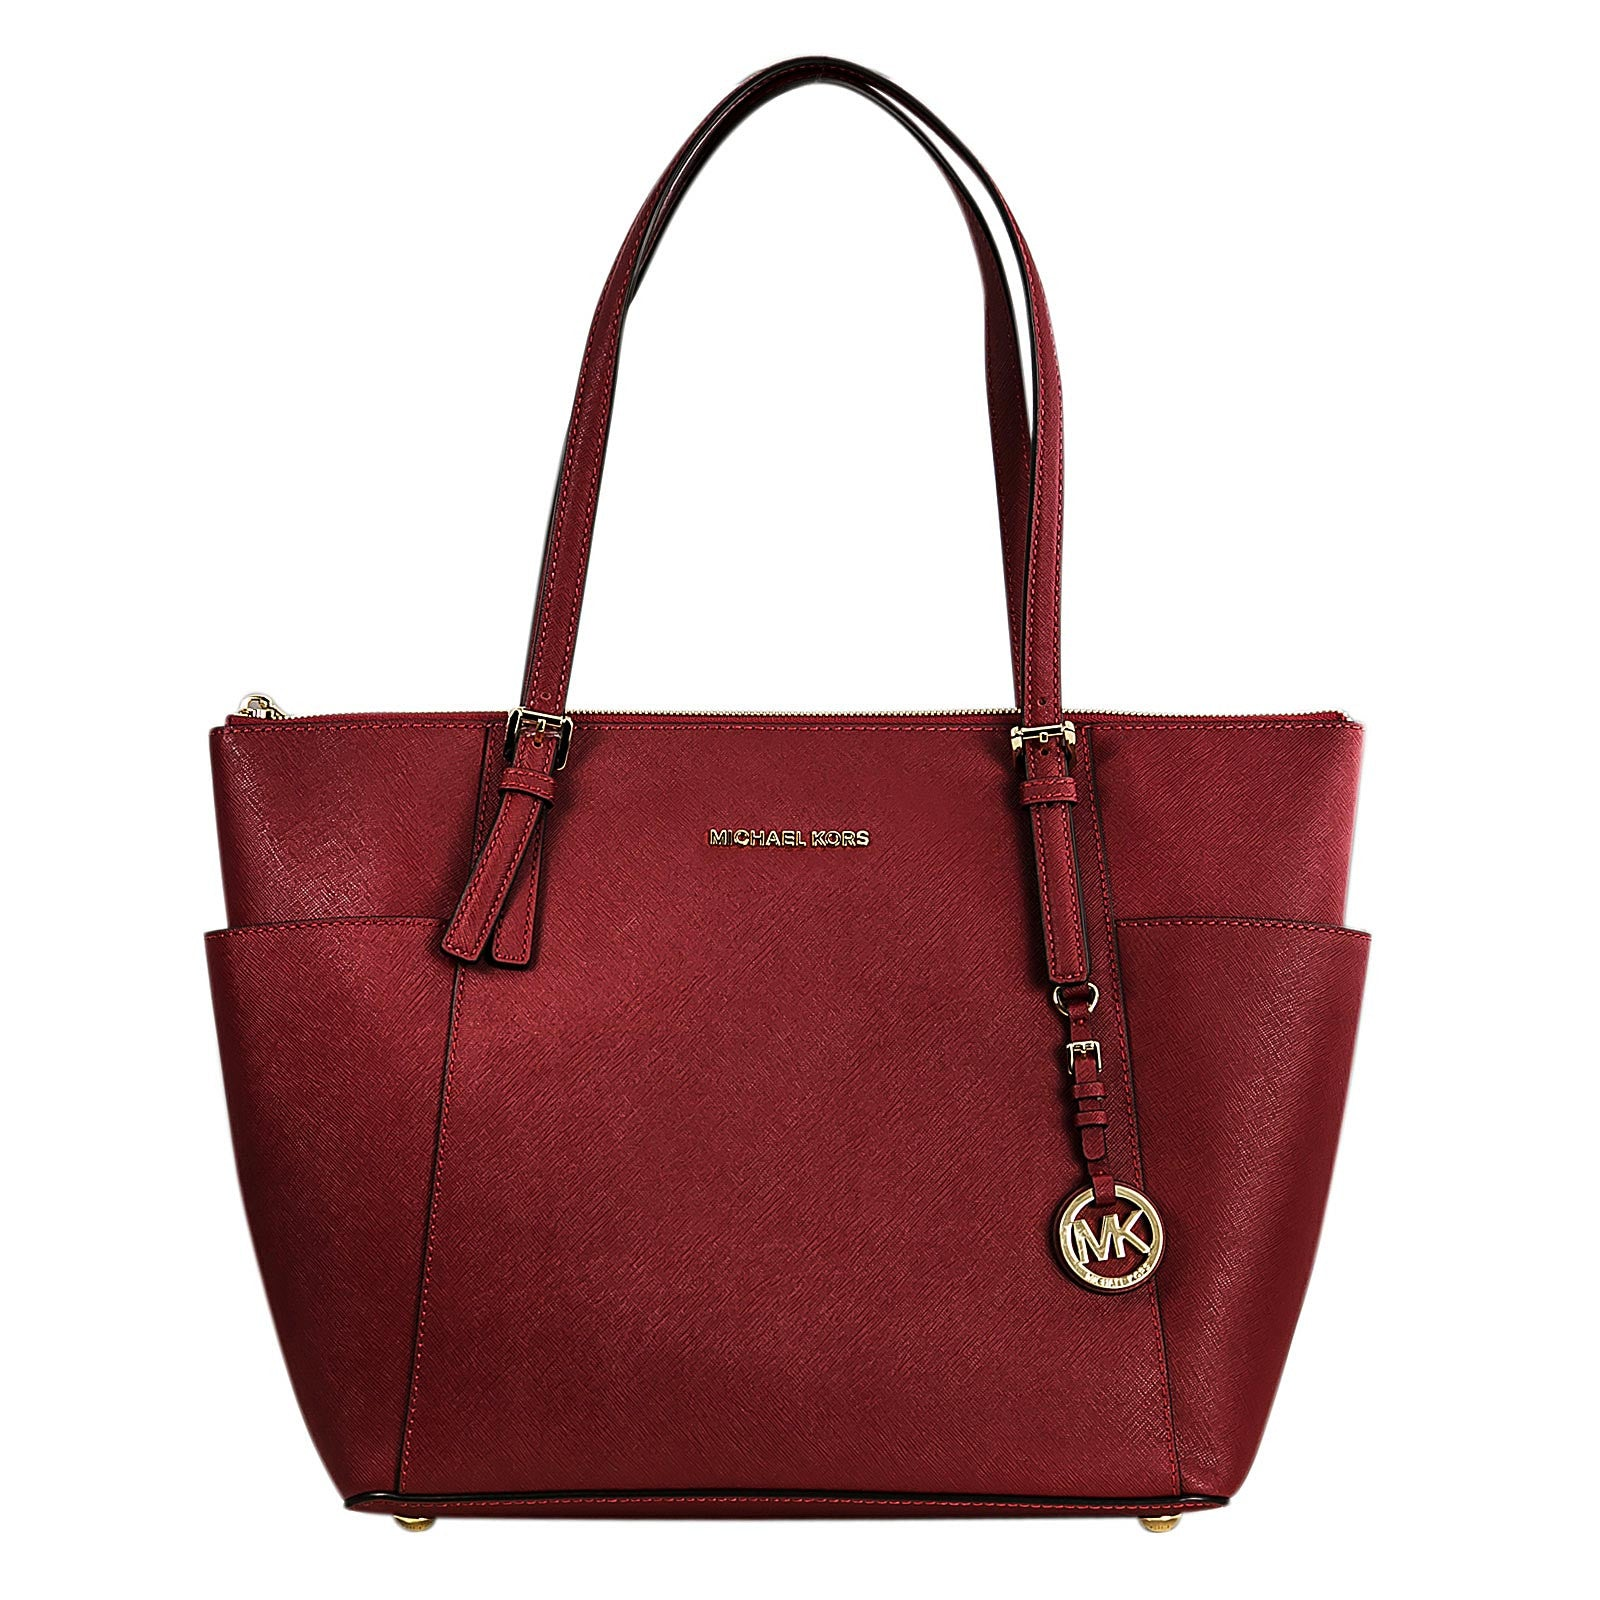 Michael Kors 30F4GTTT9L-600 Women's Jet Set Top-Zip Red Saffiano Leather Large Tote